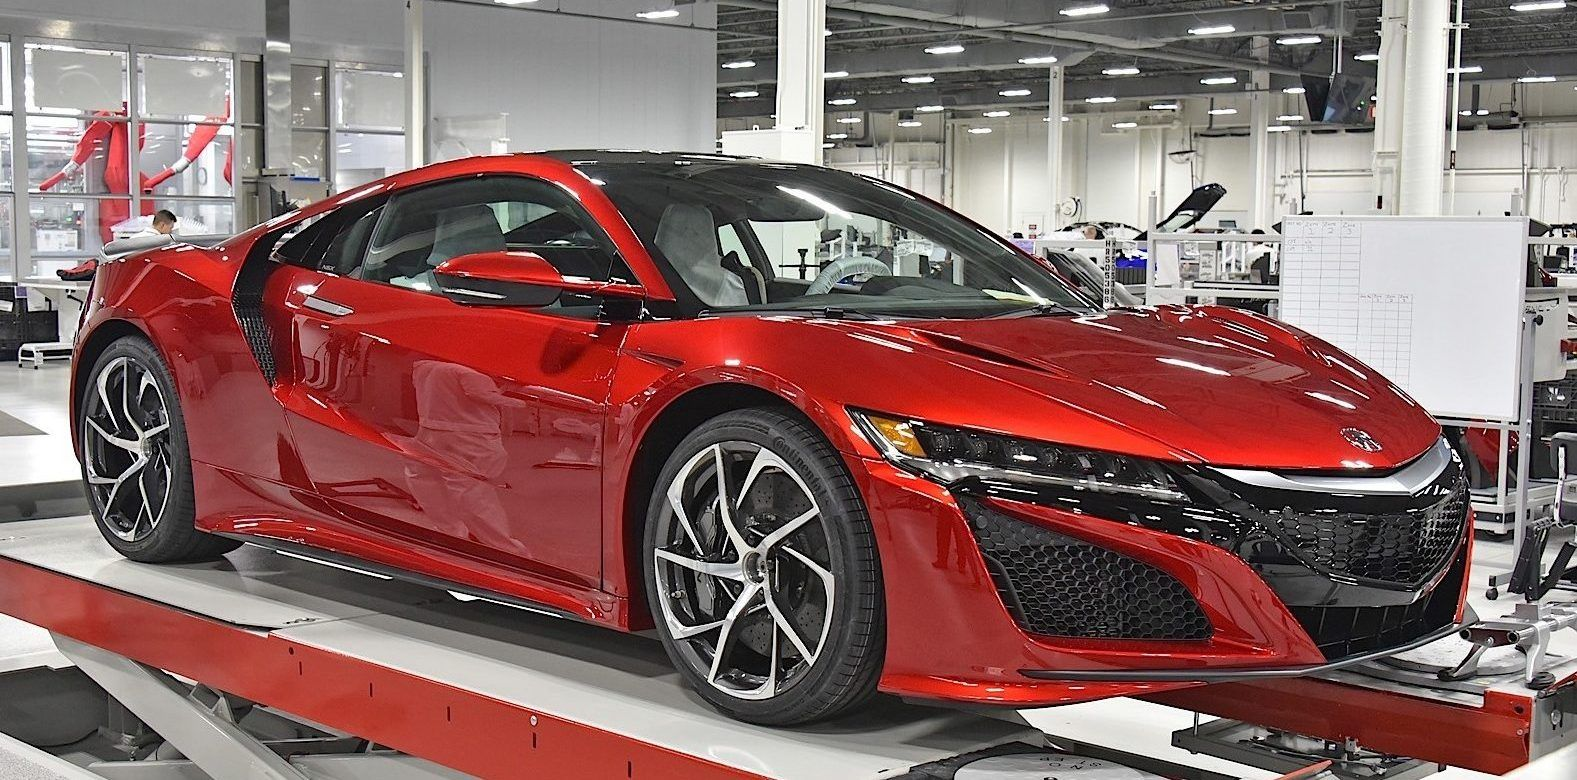 A Detailed Look At Honda's Advanced NSX Factory